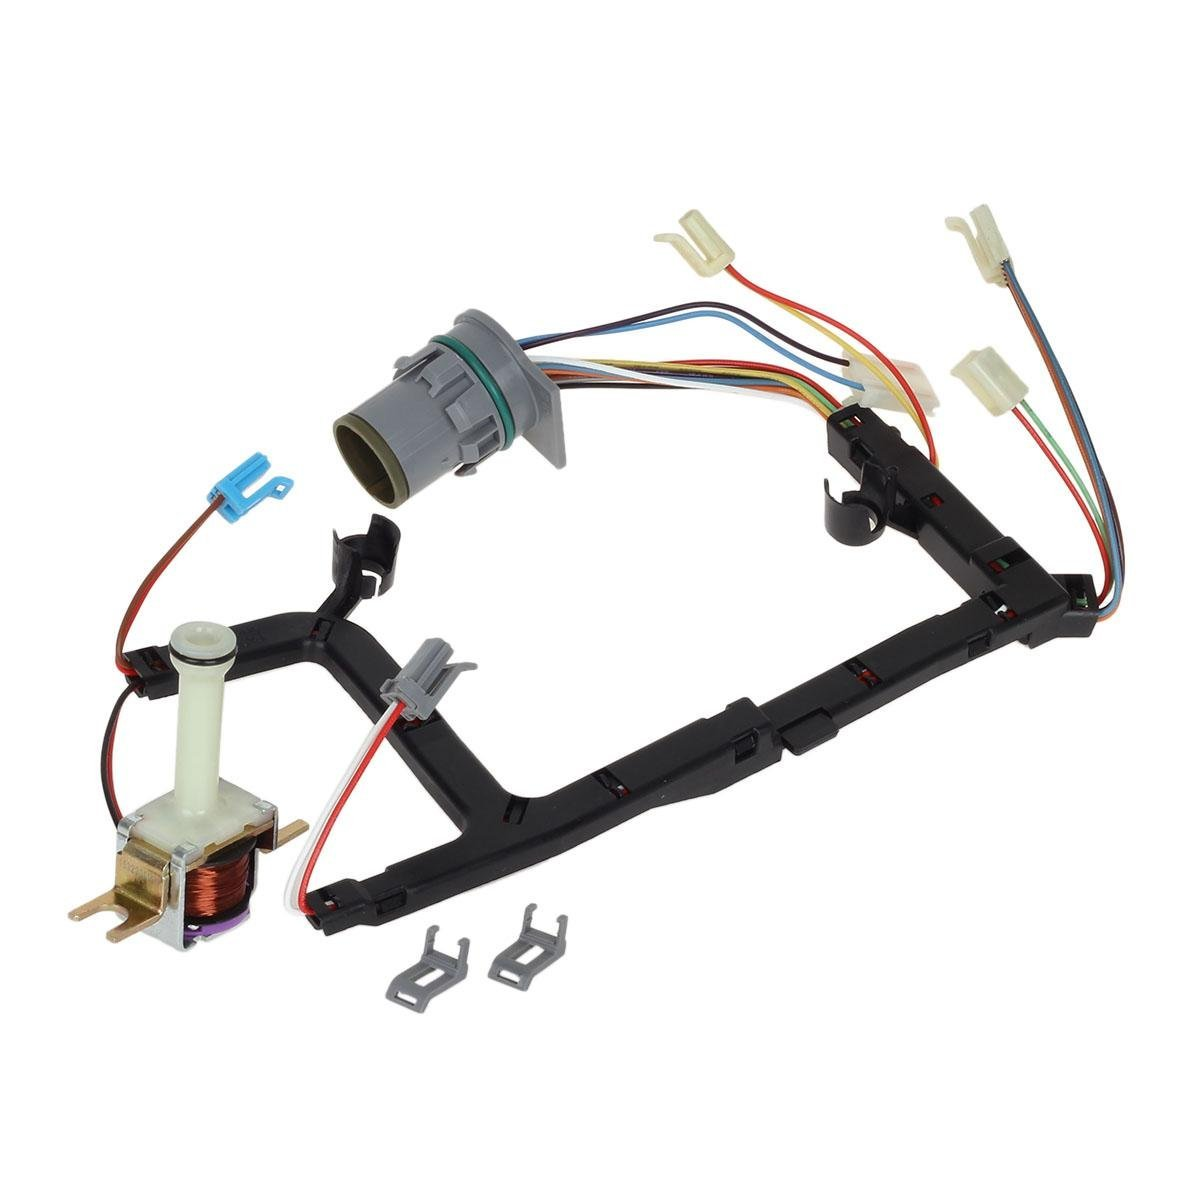 Universal 4l60e Transmission Solenoid Internal Wire Harness With Tcc 93 Gm Rear View Mirror Wiring For 1993 2002 In From Automobiles Motorcycles On Alibaba